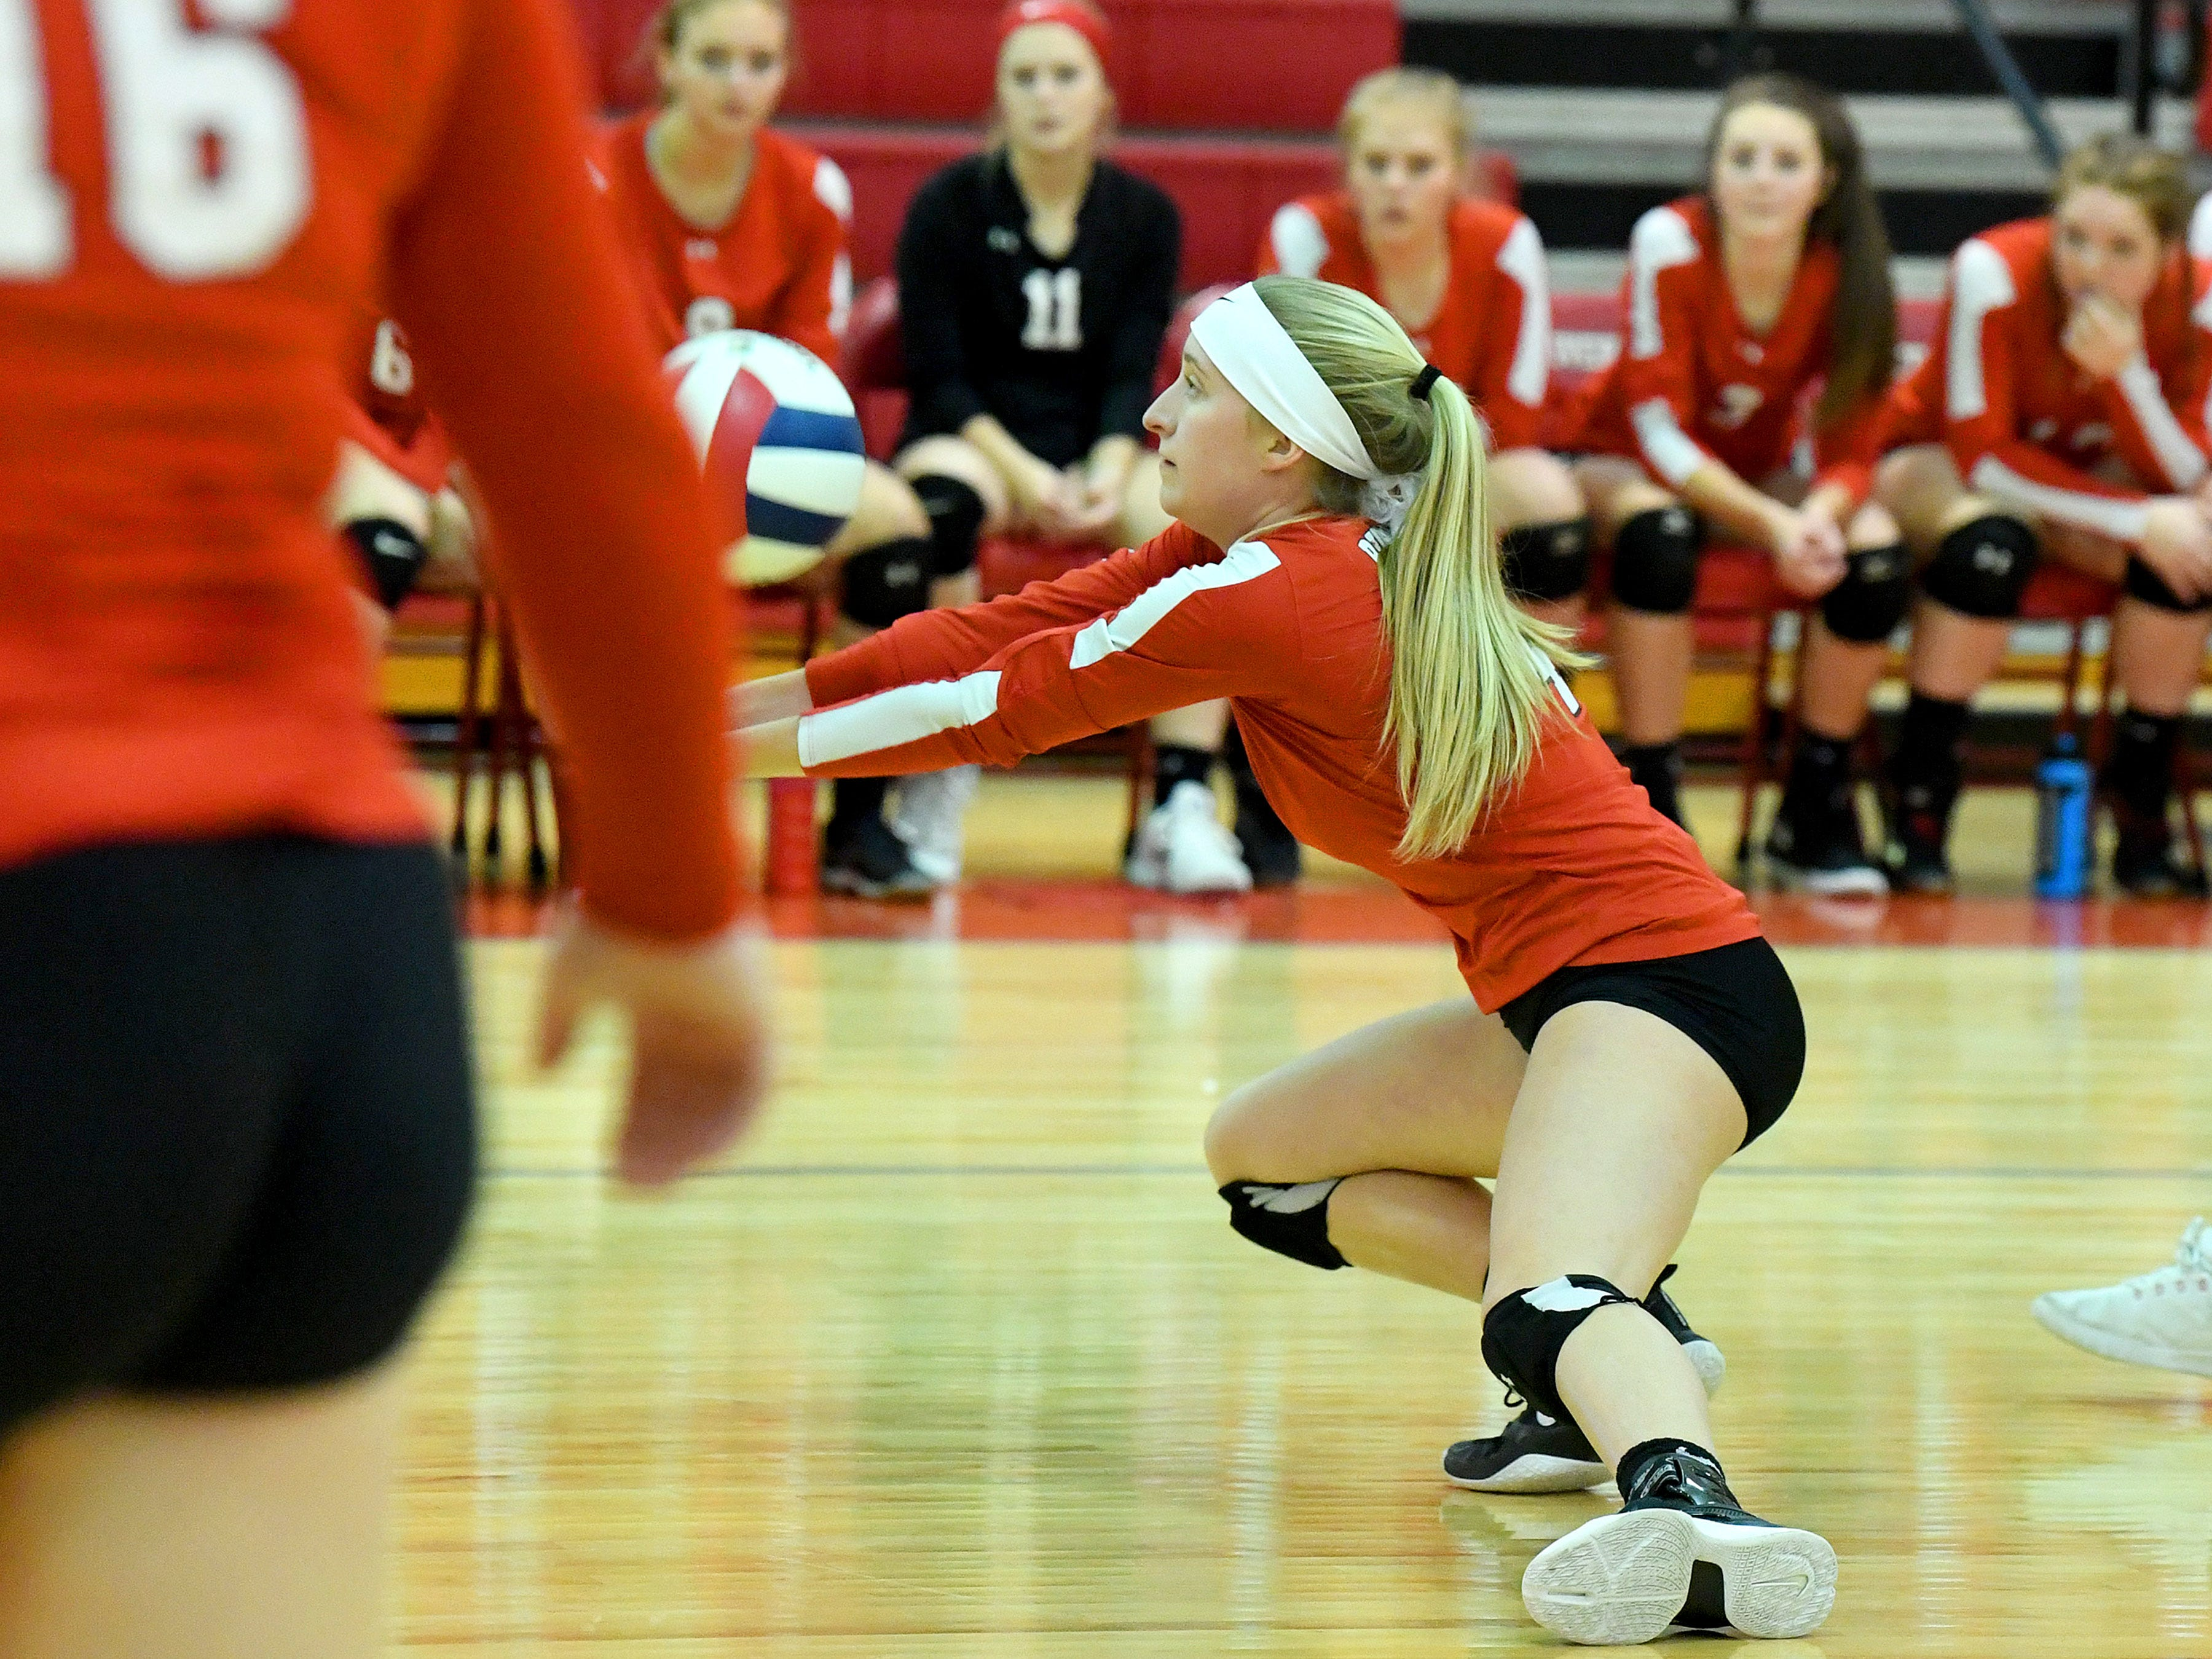 Riverheads' Emma Tomlinson bumps the ball during a Region 1B quarterfinal match, played in Greenville on Thursday, Nov. 1, 2018.